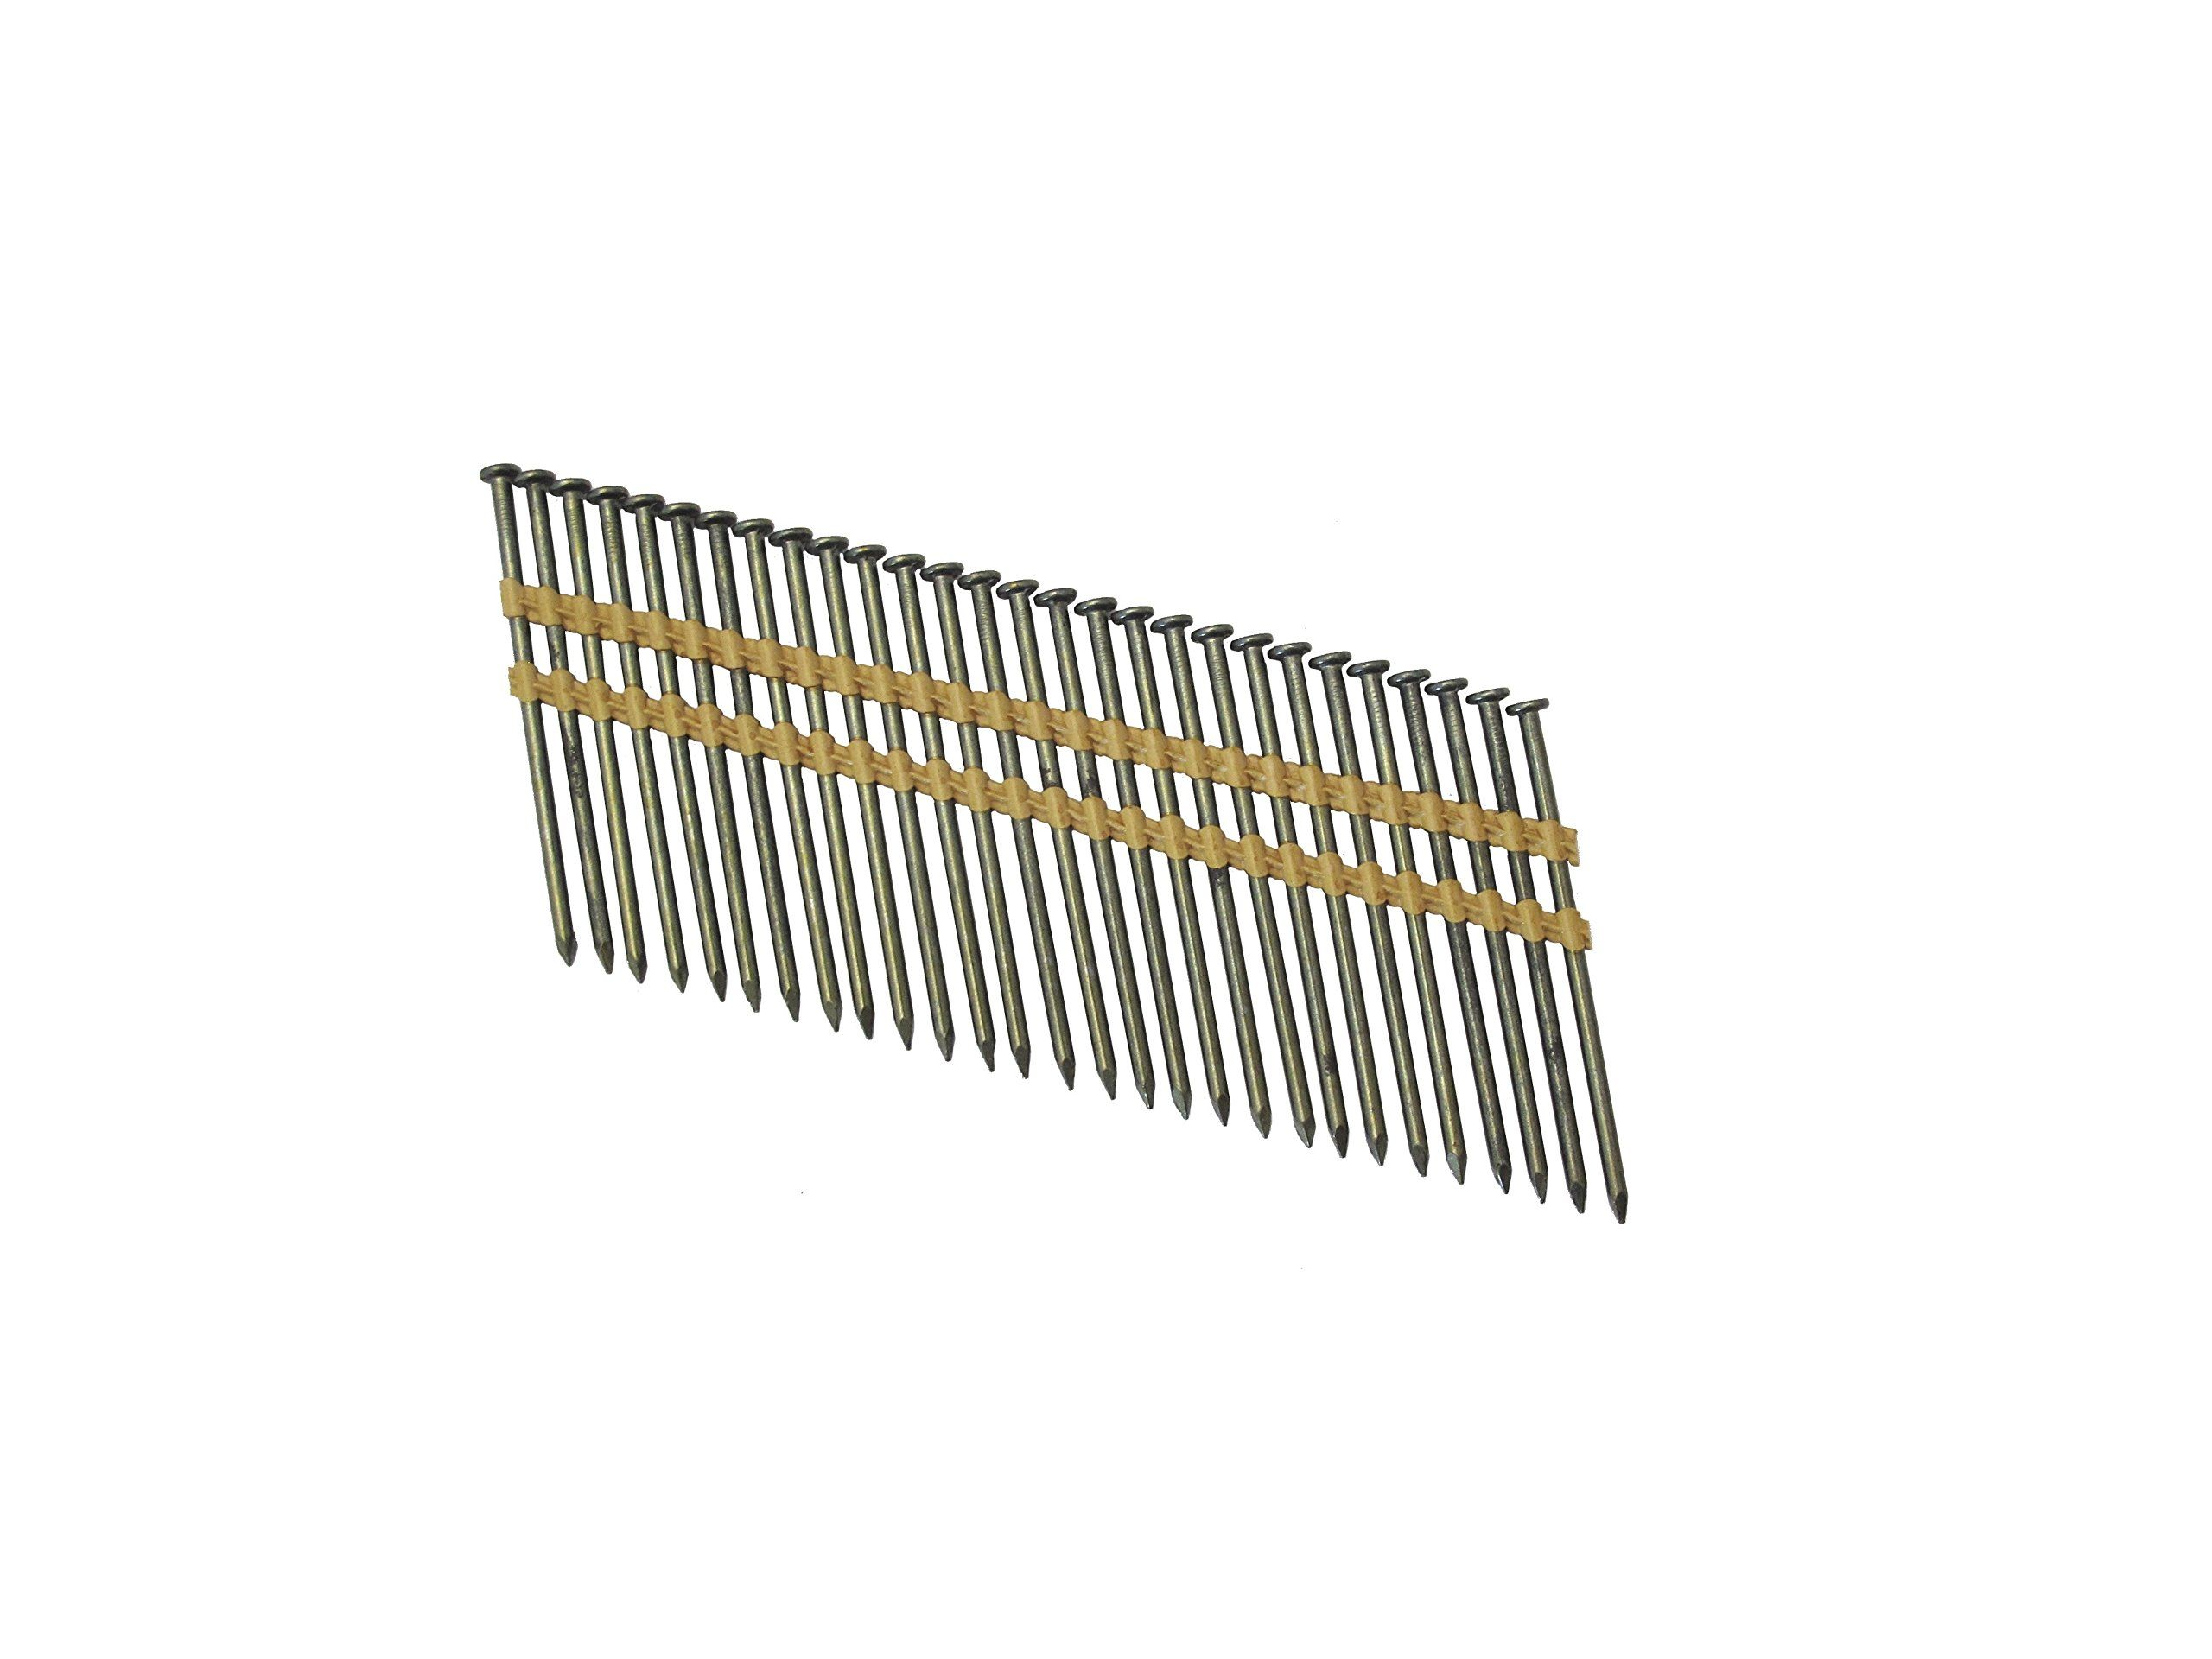 Grip Rite Prime Guard Gr3011m 21 Degree Plastic Strip Round Head Bright Coated Collated Framing Nails 3 X 0 120 Ad Framing Nails Air Tools Framing Nailers